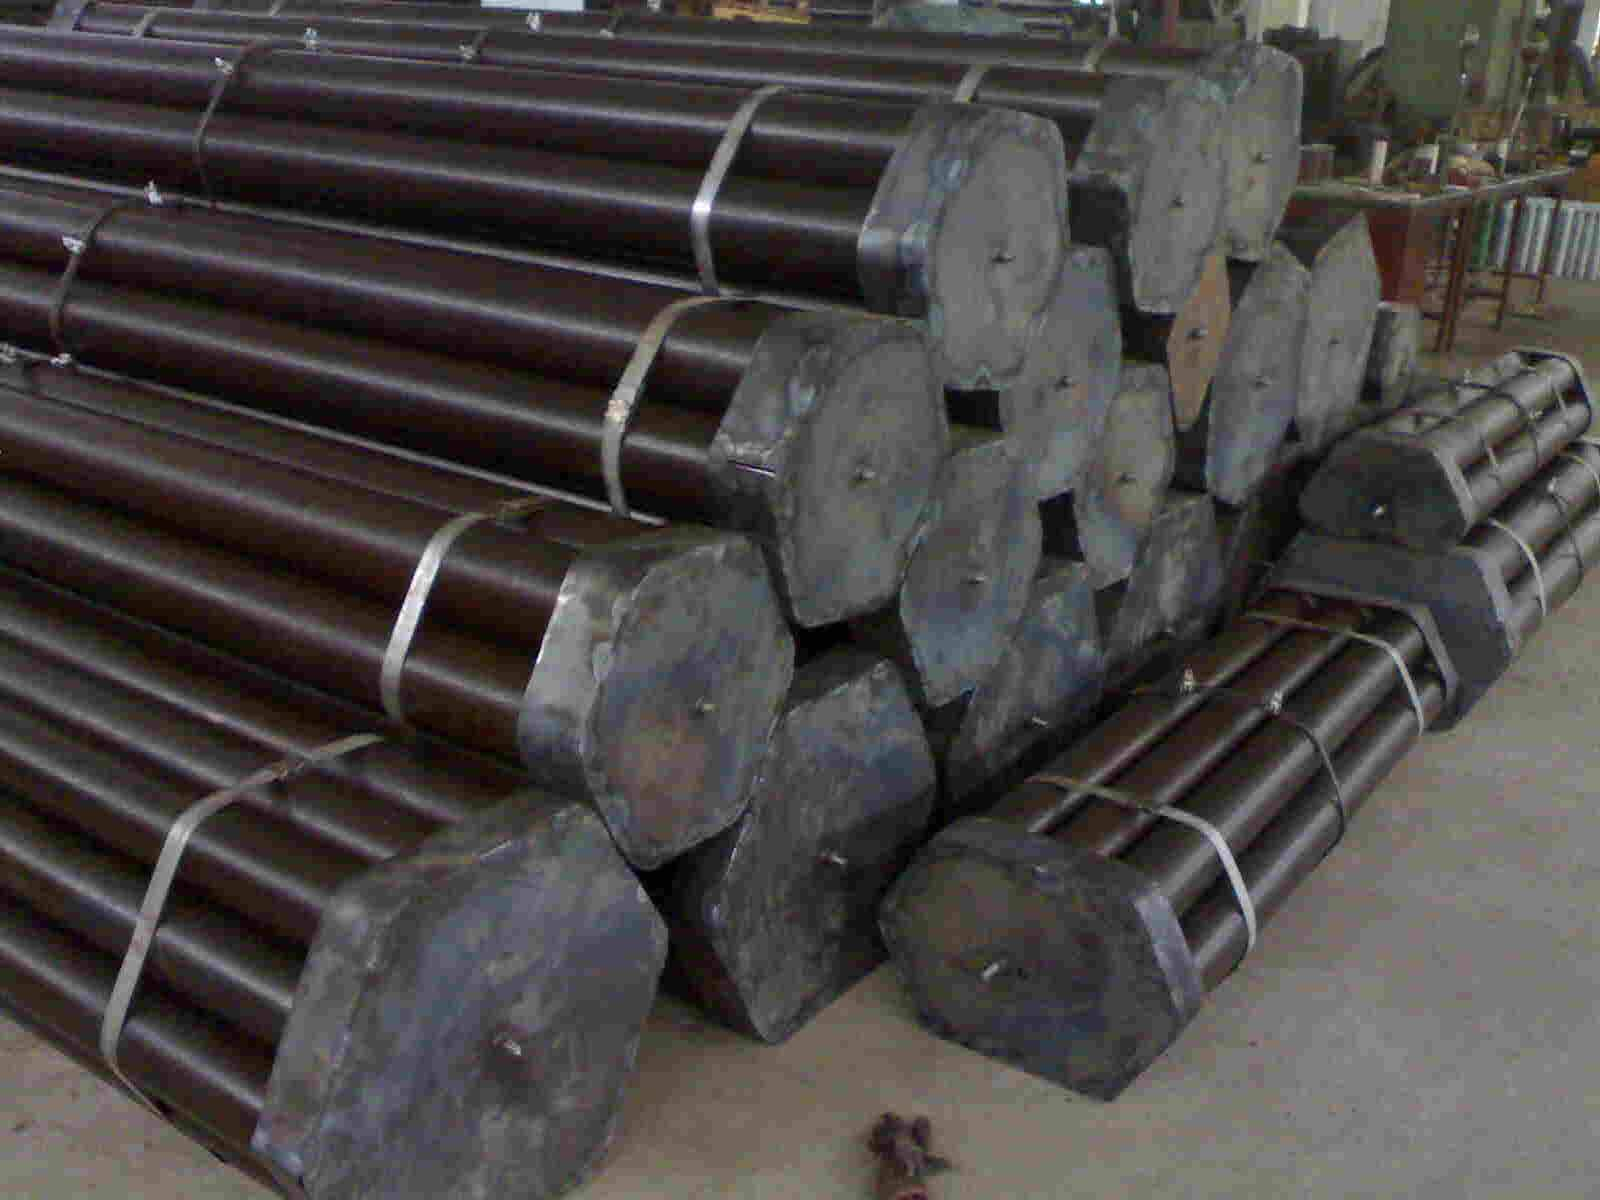 46, 56, 66, 76, 86, 101, 116, 131, 146 Metric Series Casing/BW, NW, HW, PW Flush-Jointed W series ca